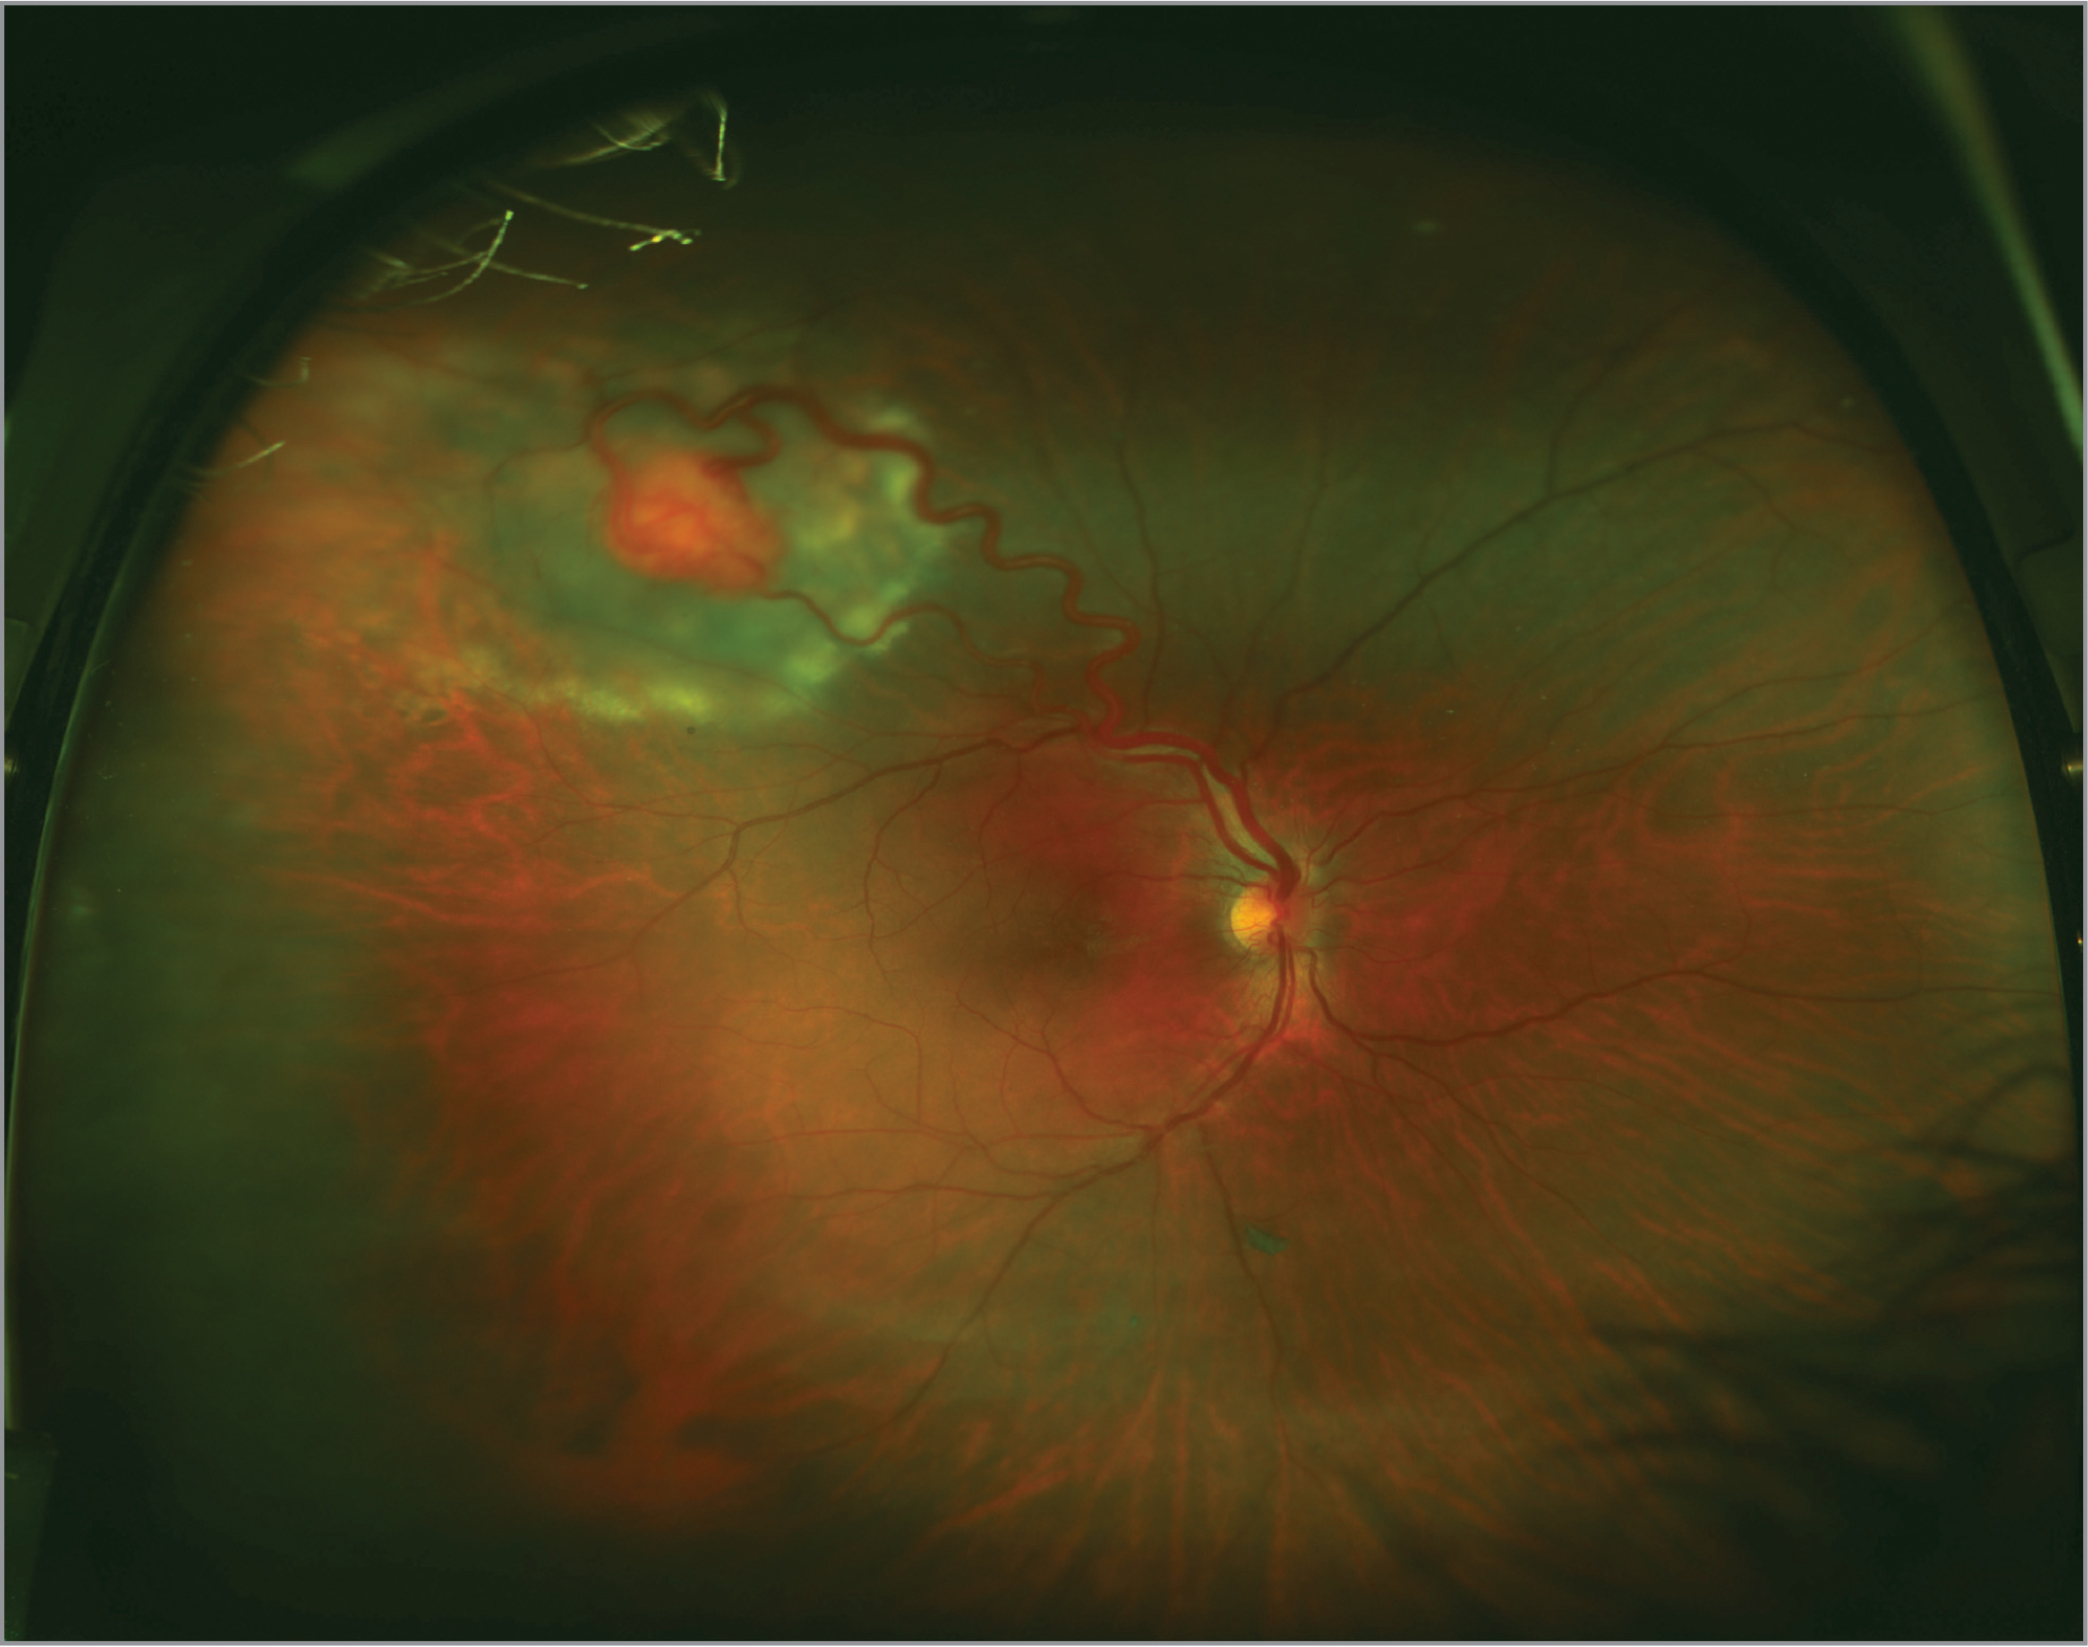 Widefield fundus photo of a large retinal hemangioblastoma with surrounding exudates and subretinal fluid.